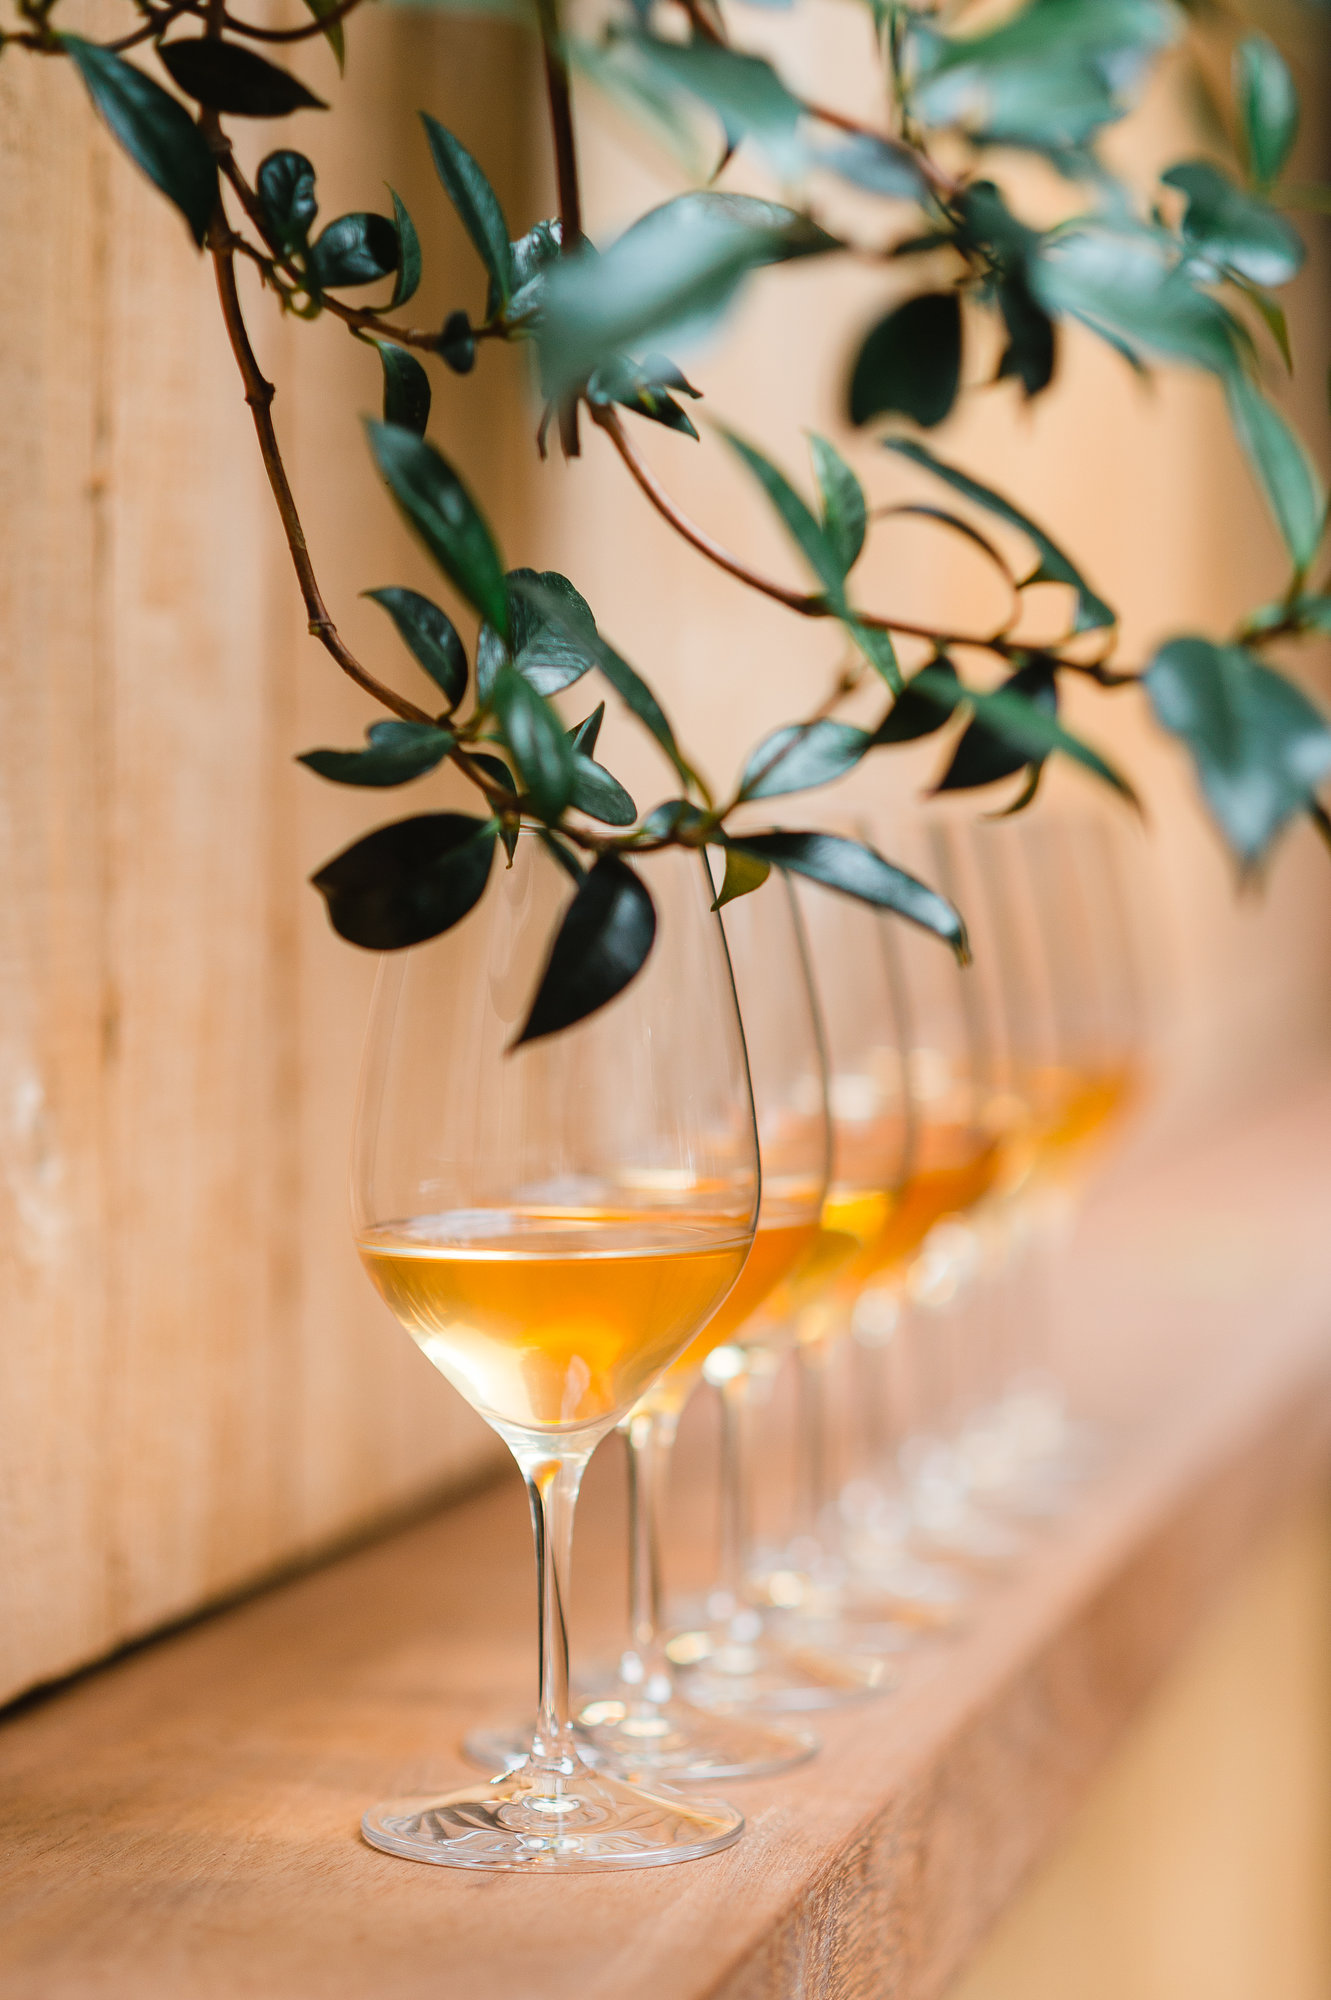 Imbibe's Orange Wine Tasting